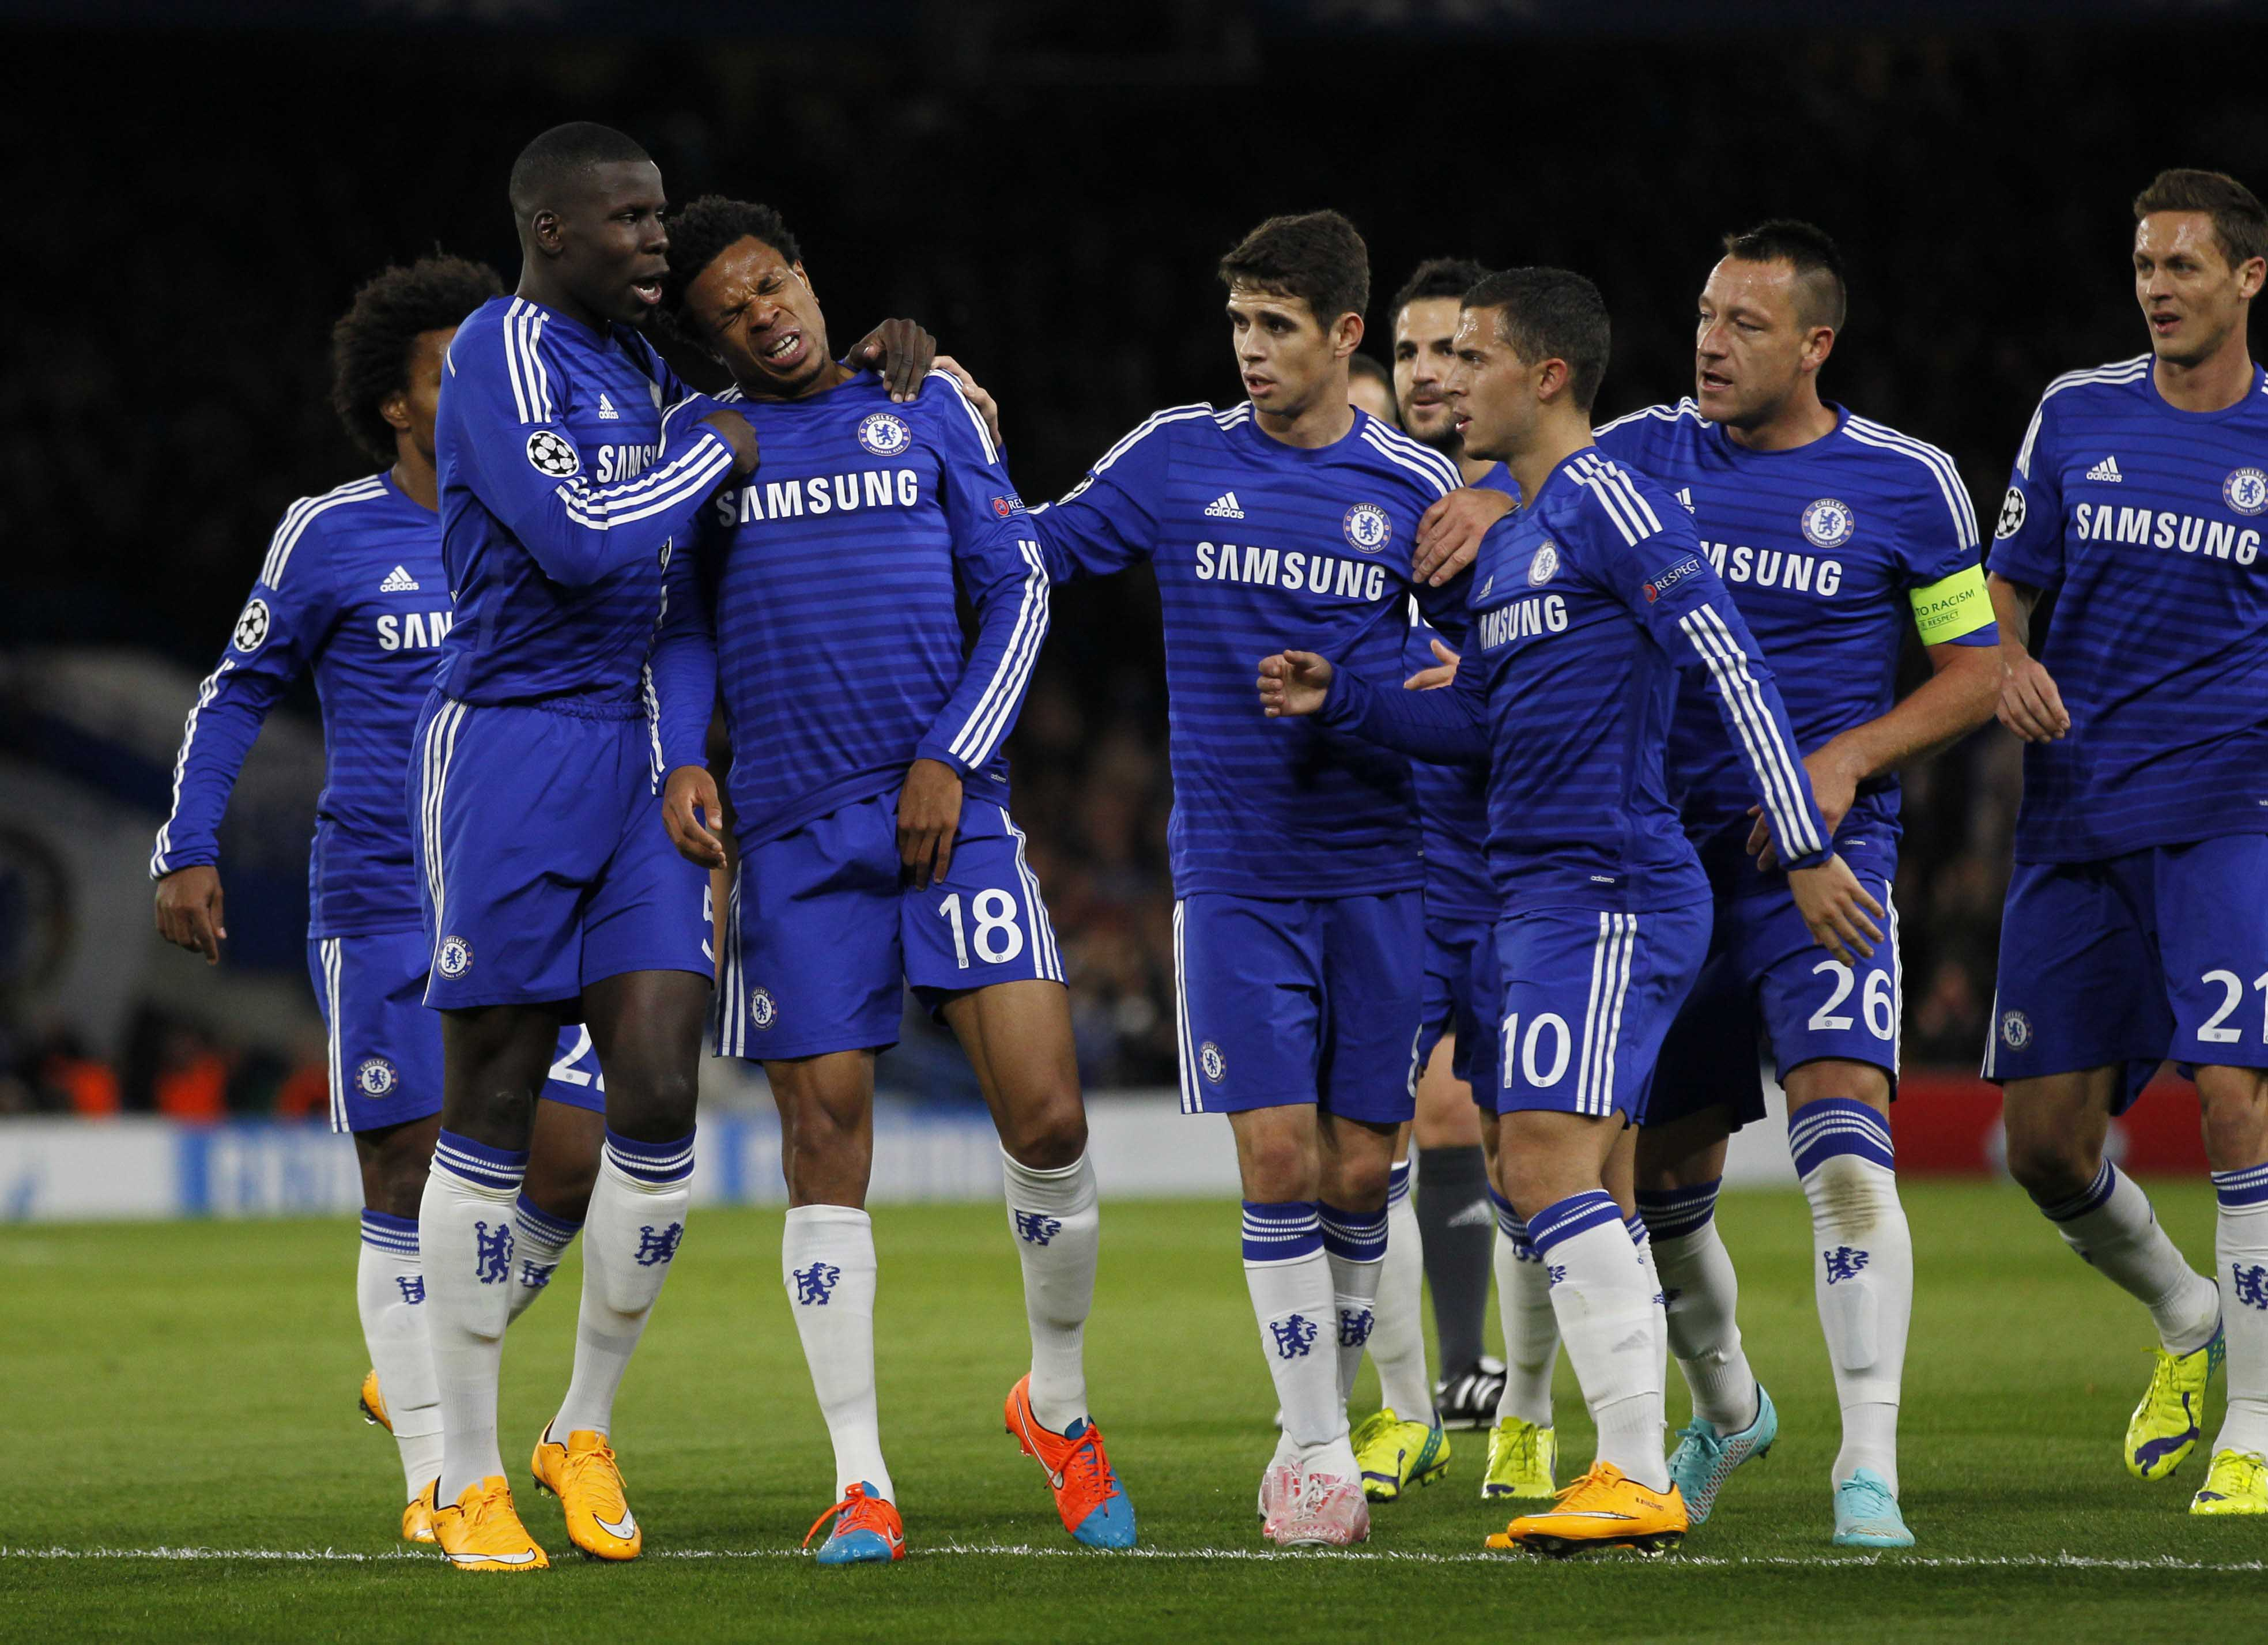 Chelseas French striker Loic Remy (3rd L) reacts as he pulls up injured after scoring the opening goal against Maribor.